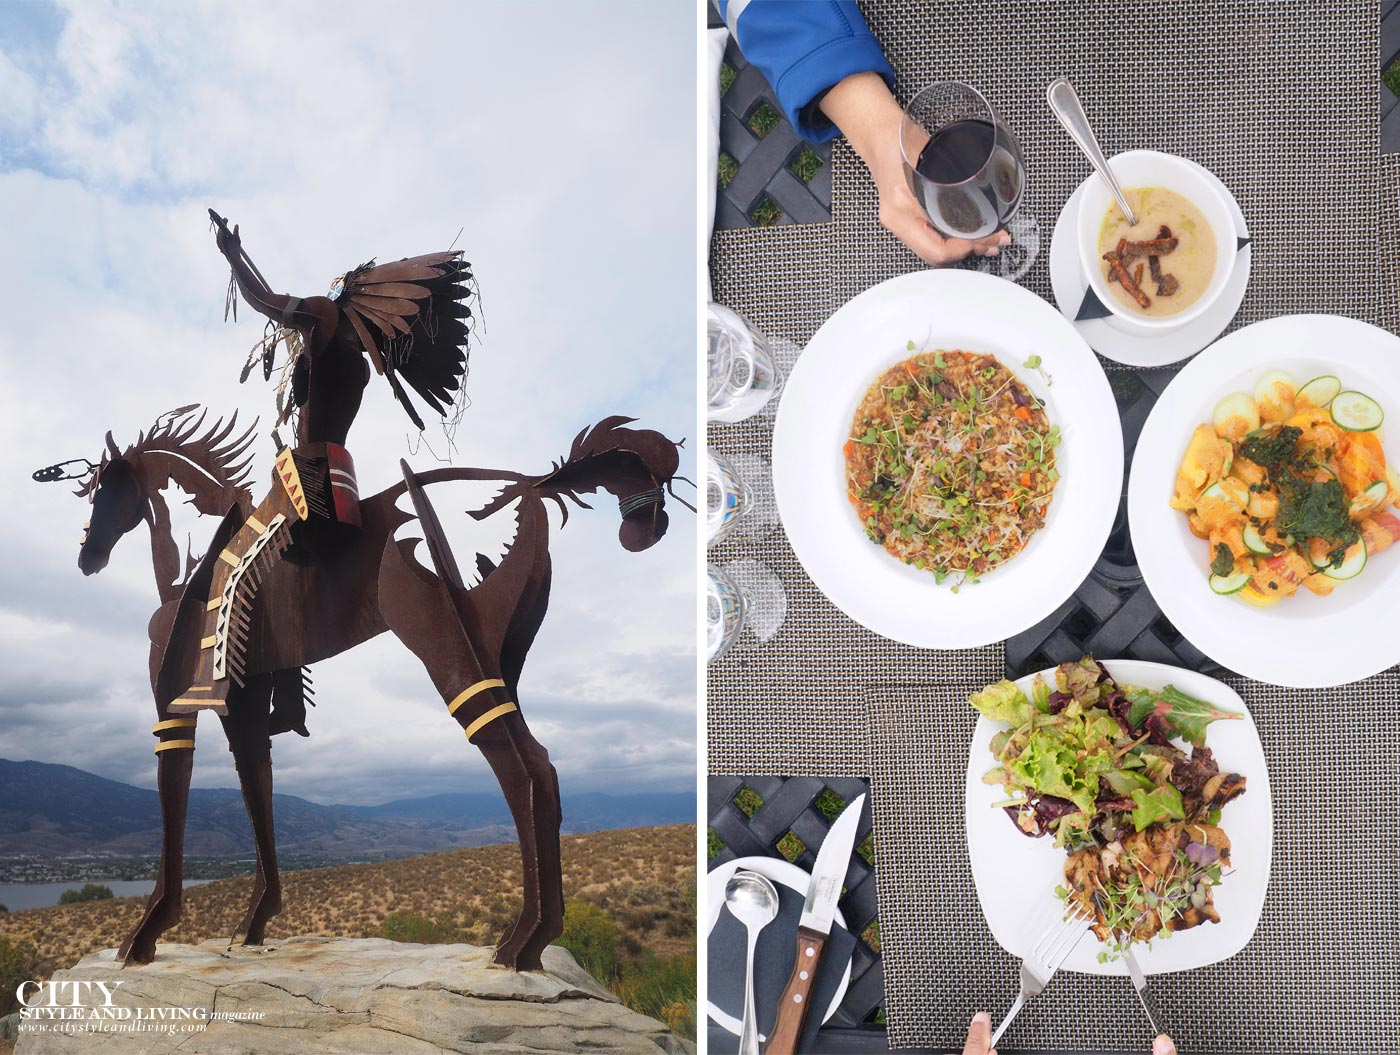 City STyle and Living Magazine Nk'Mip cellars bronze statue of Aboriginal man on horse and lunch at The patio restaurant